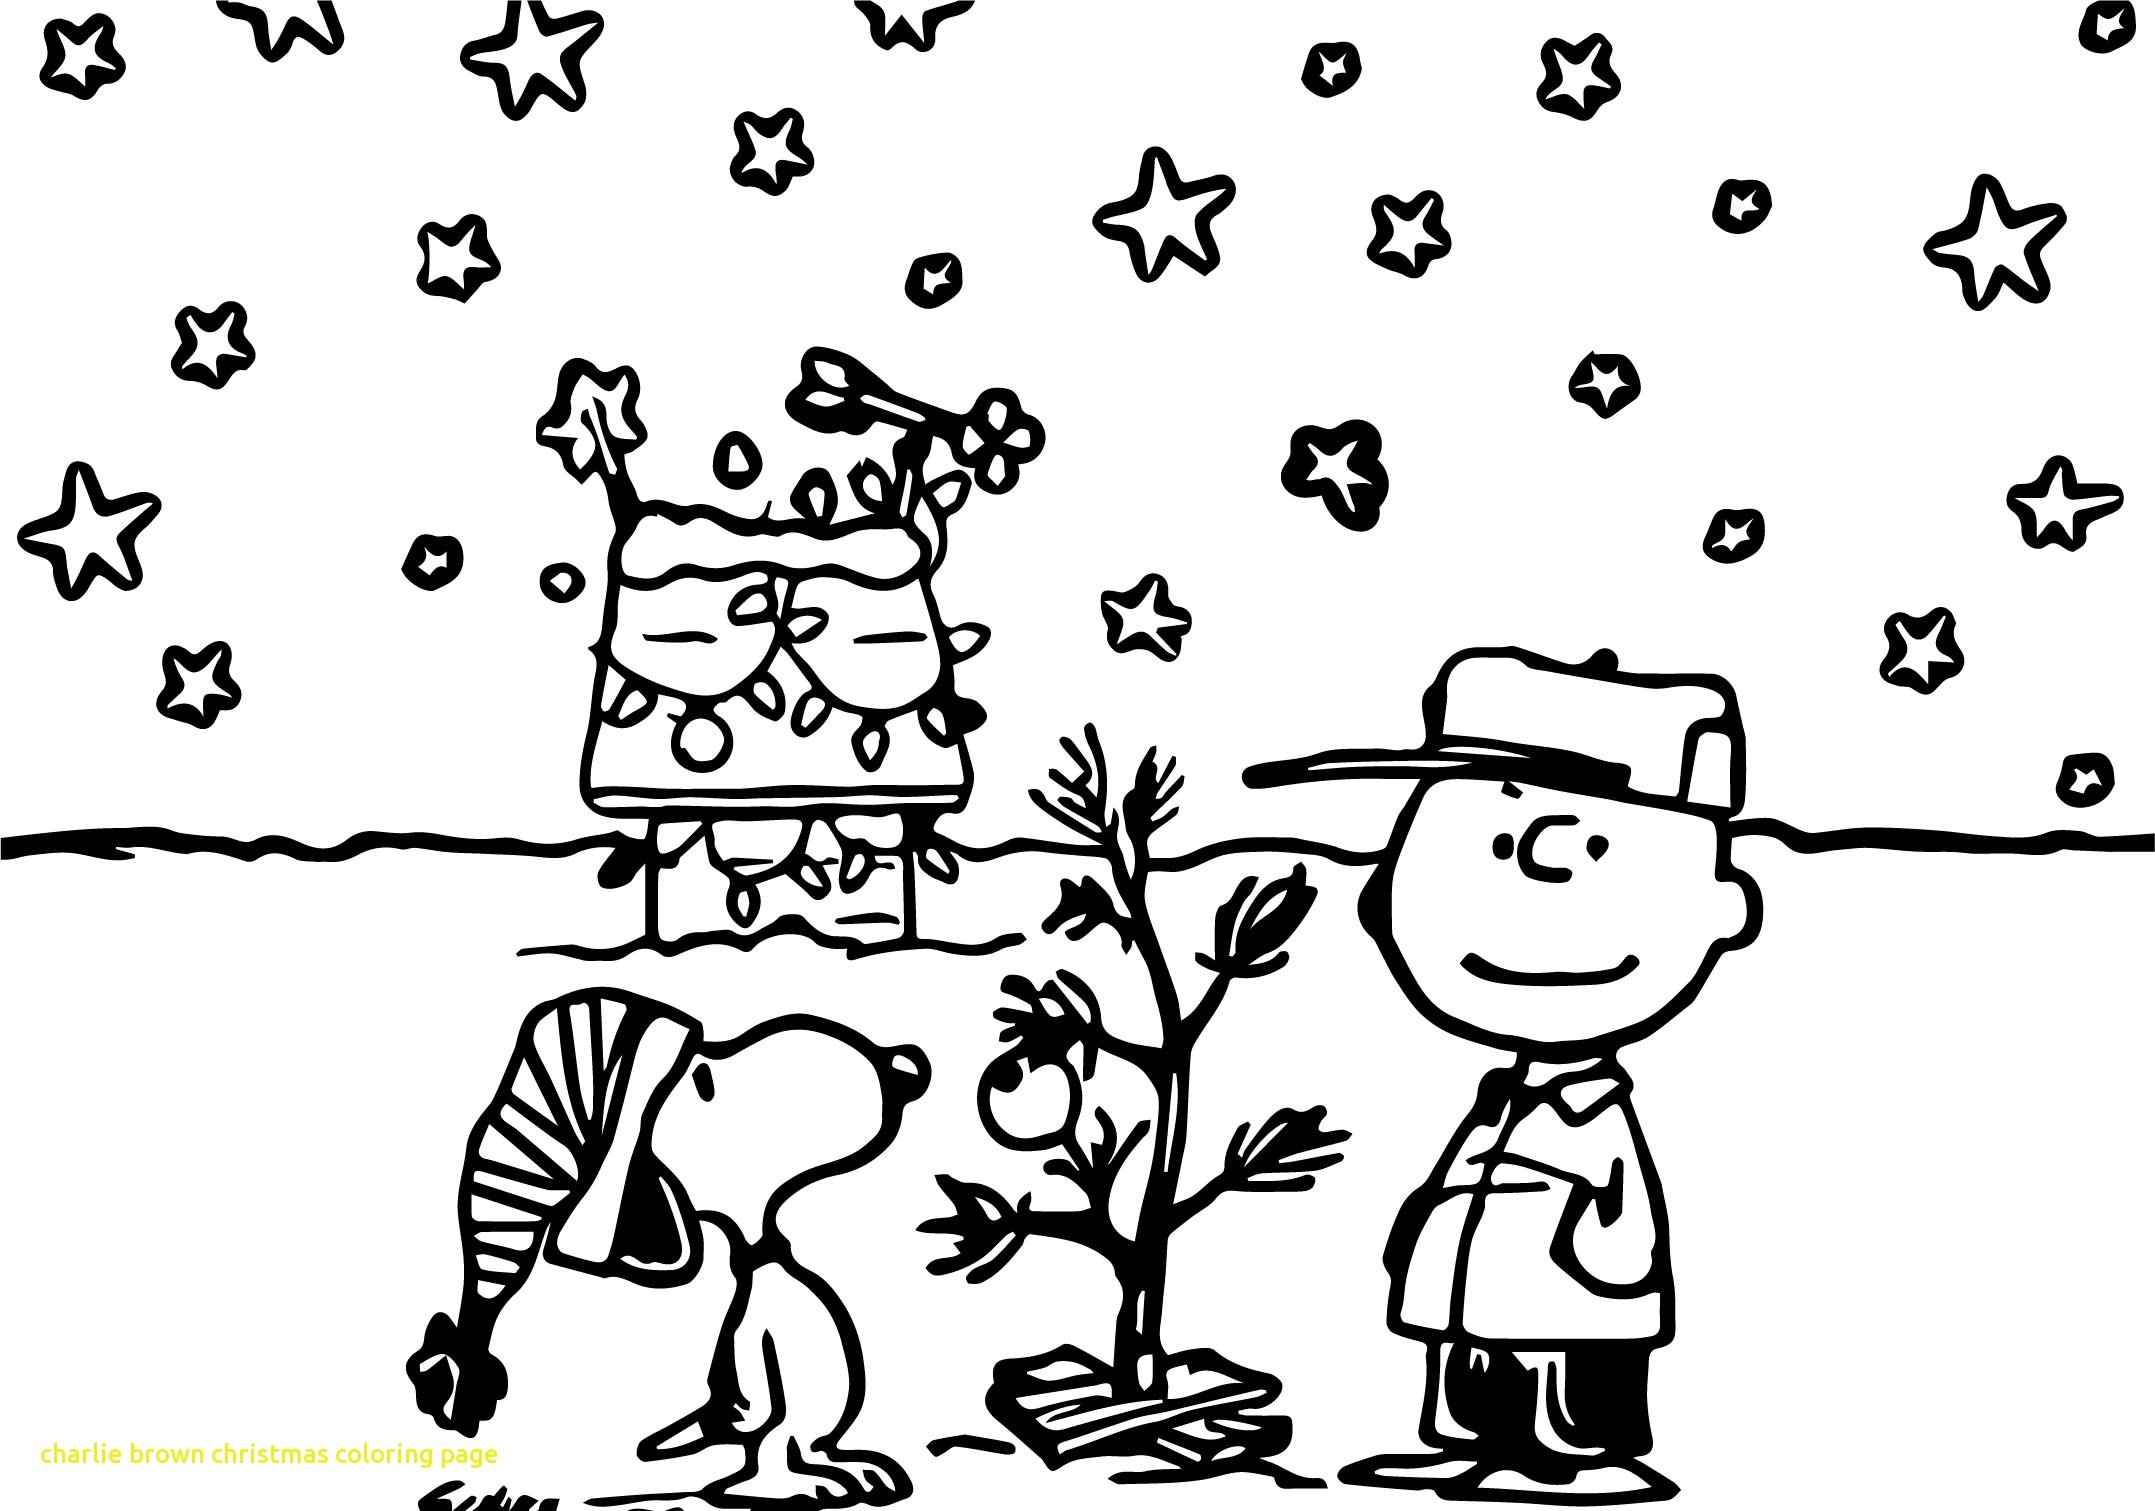 Free Printable Charlie Brown Christmas Coloring Pages With Africa Download At